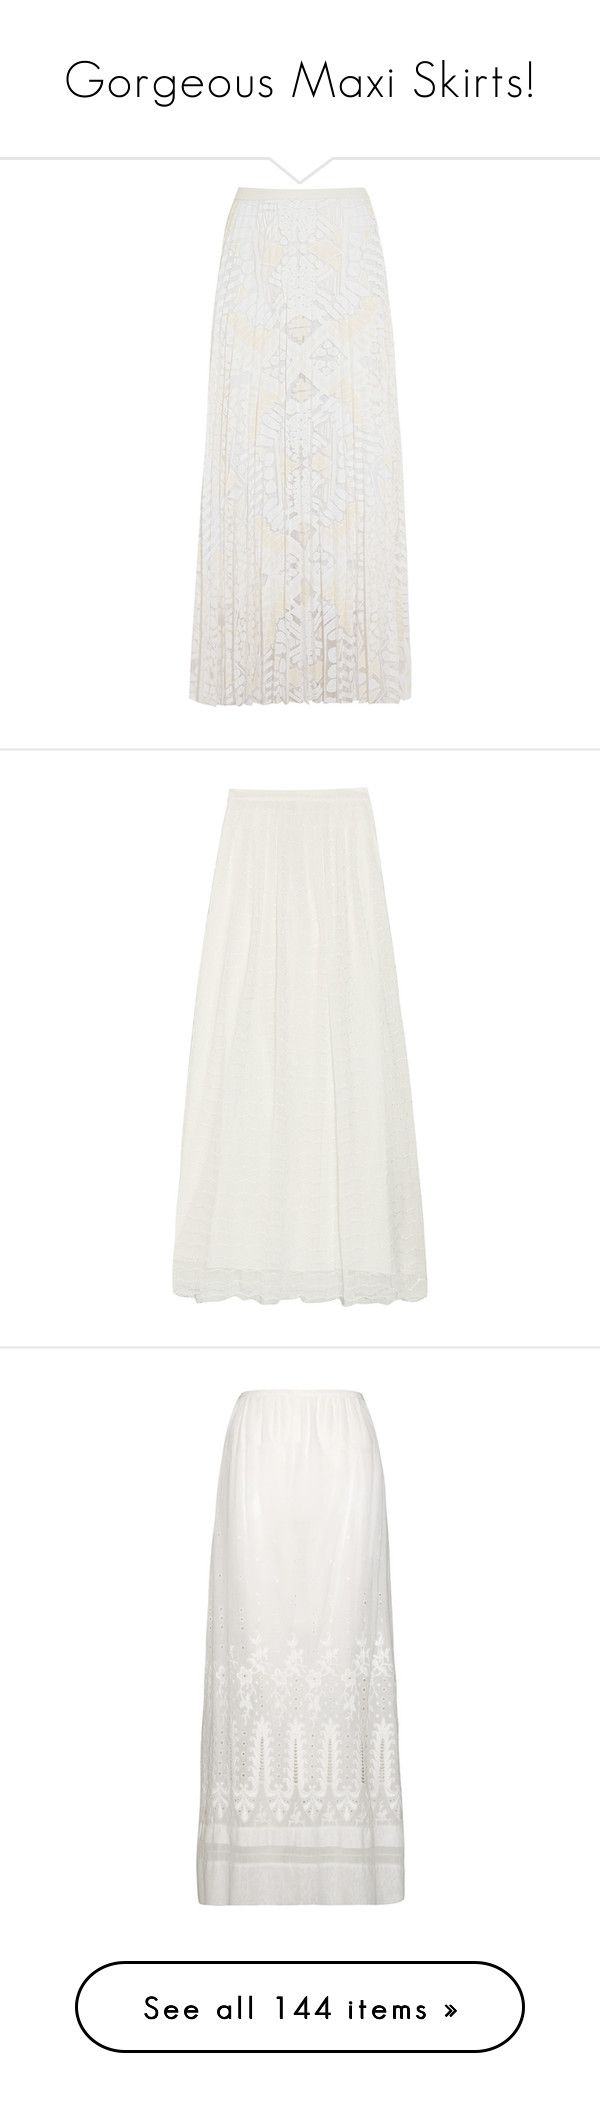 """""""Gorgeous Maxi Skirts!"""" by jewelsinthecrown ❤ liked on Polyvore featuring skirts, white, long maxi skirts, long pleated maxi skirt, pleated skirt, white pleated skirt, long white maxi skirt, long tulle skirt, off white maxi skirt and ankle length skirt"""